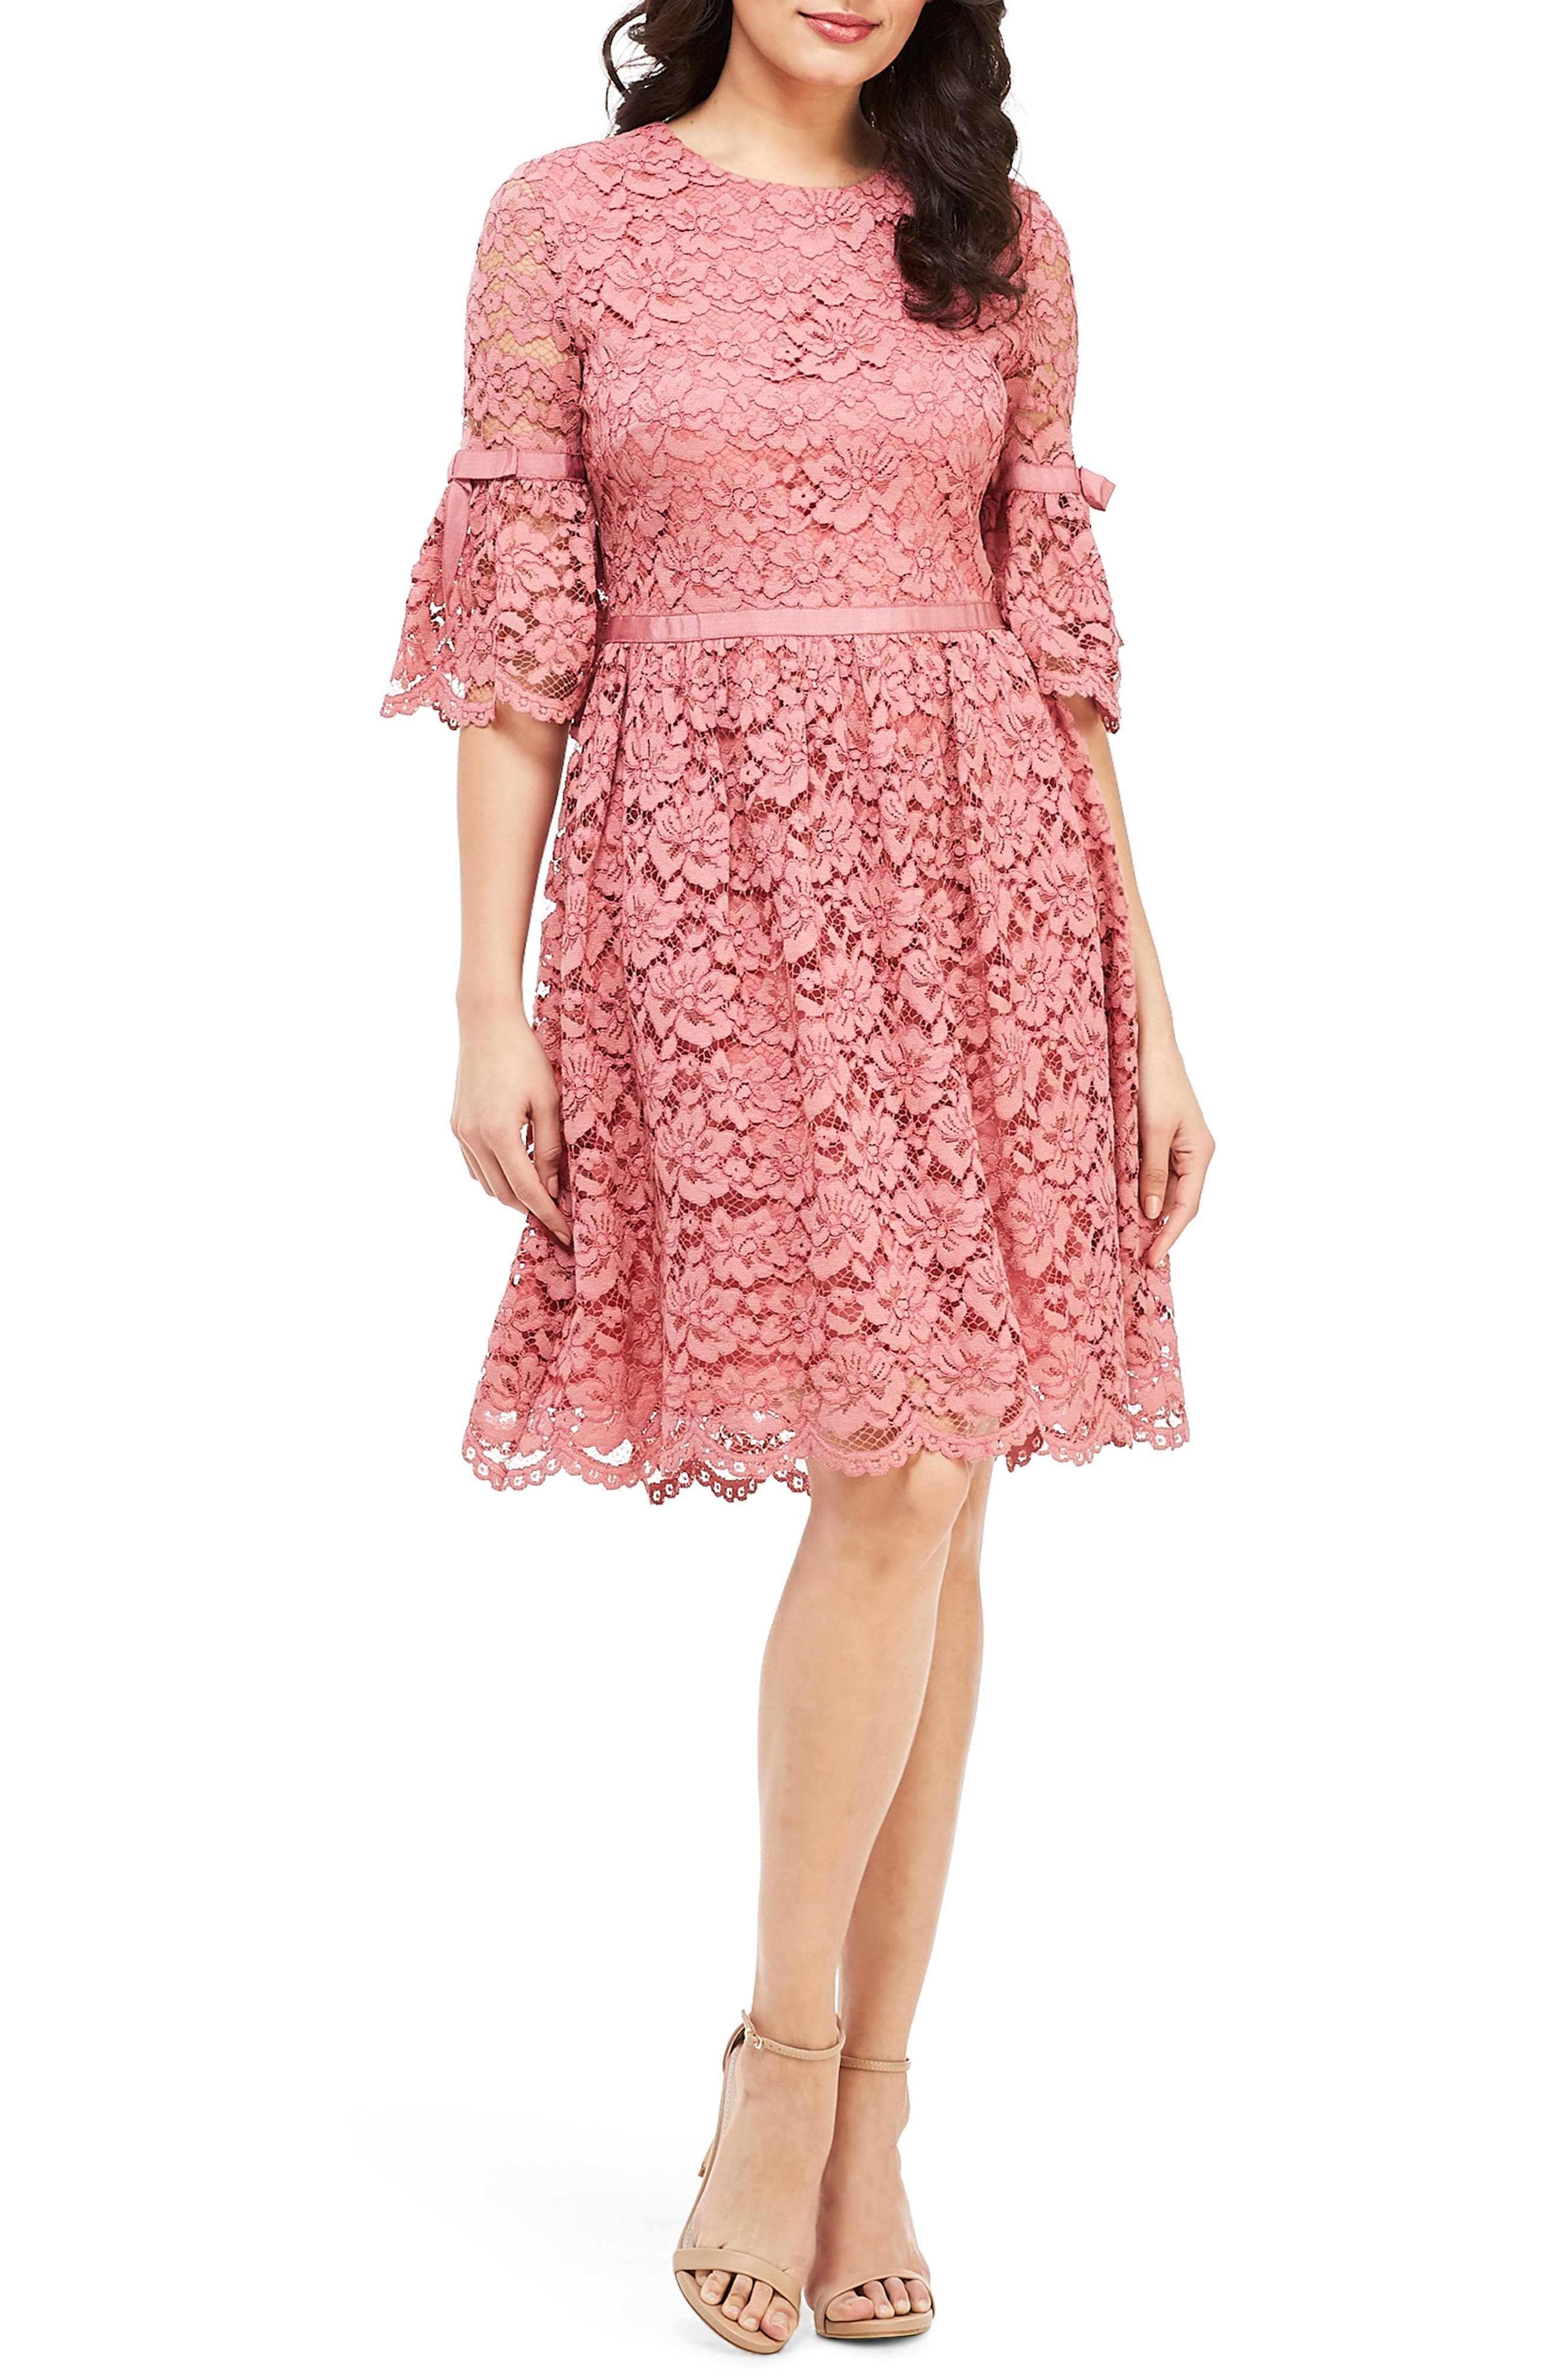 Gal Meets Glam Collection Josephine Scallop Lace Fit & Flare Dress, Pink